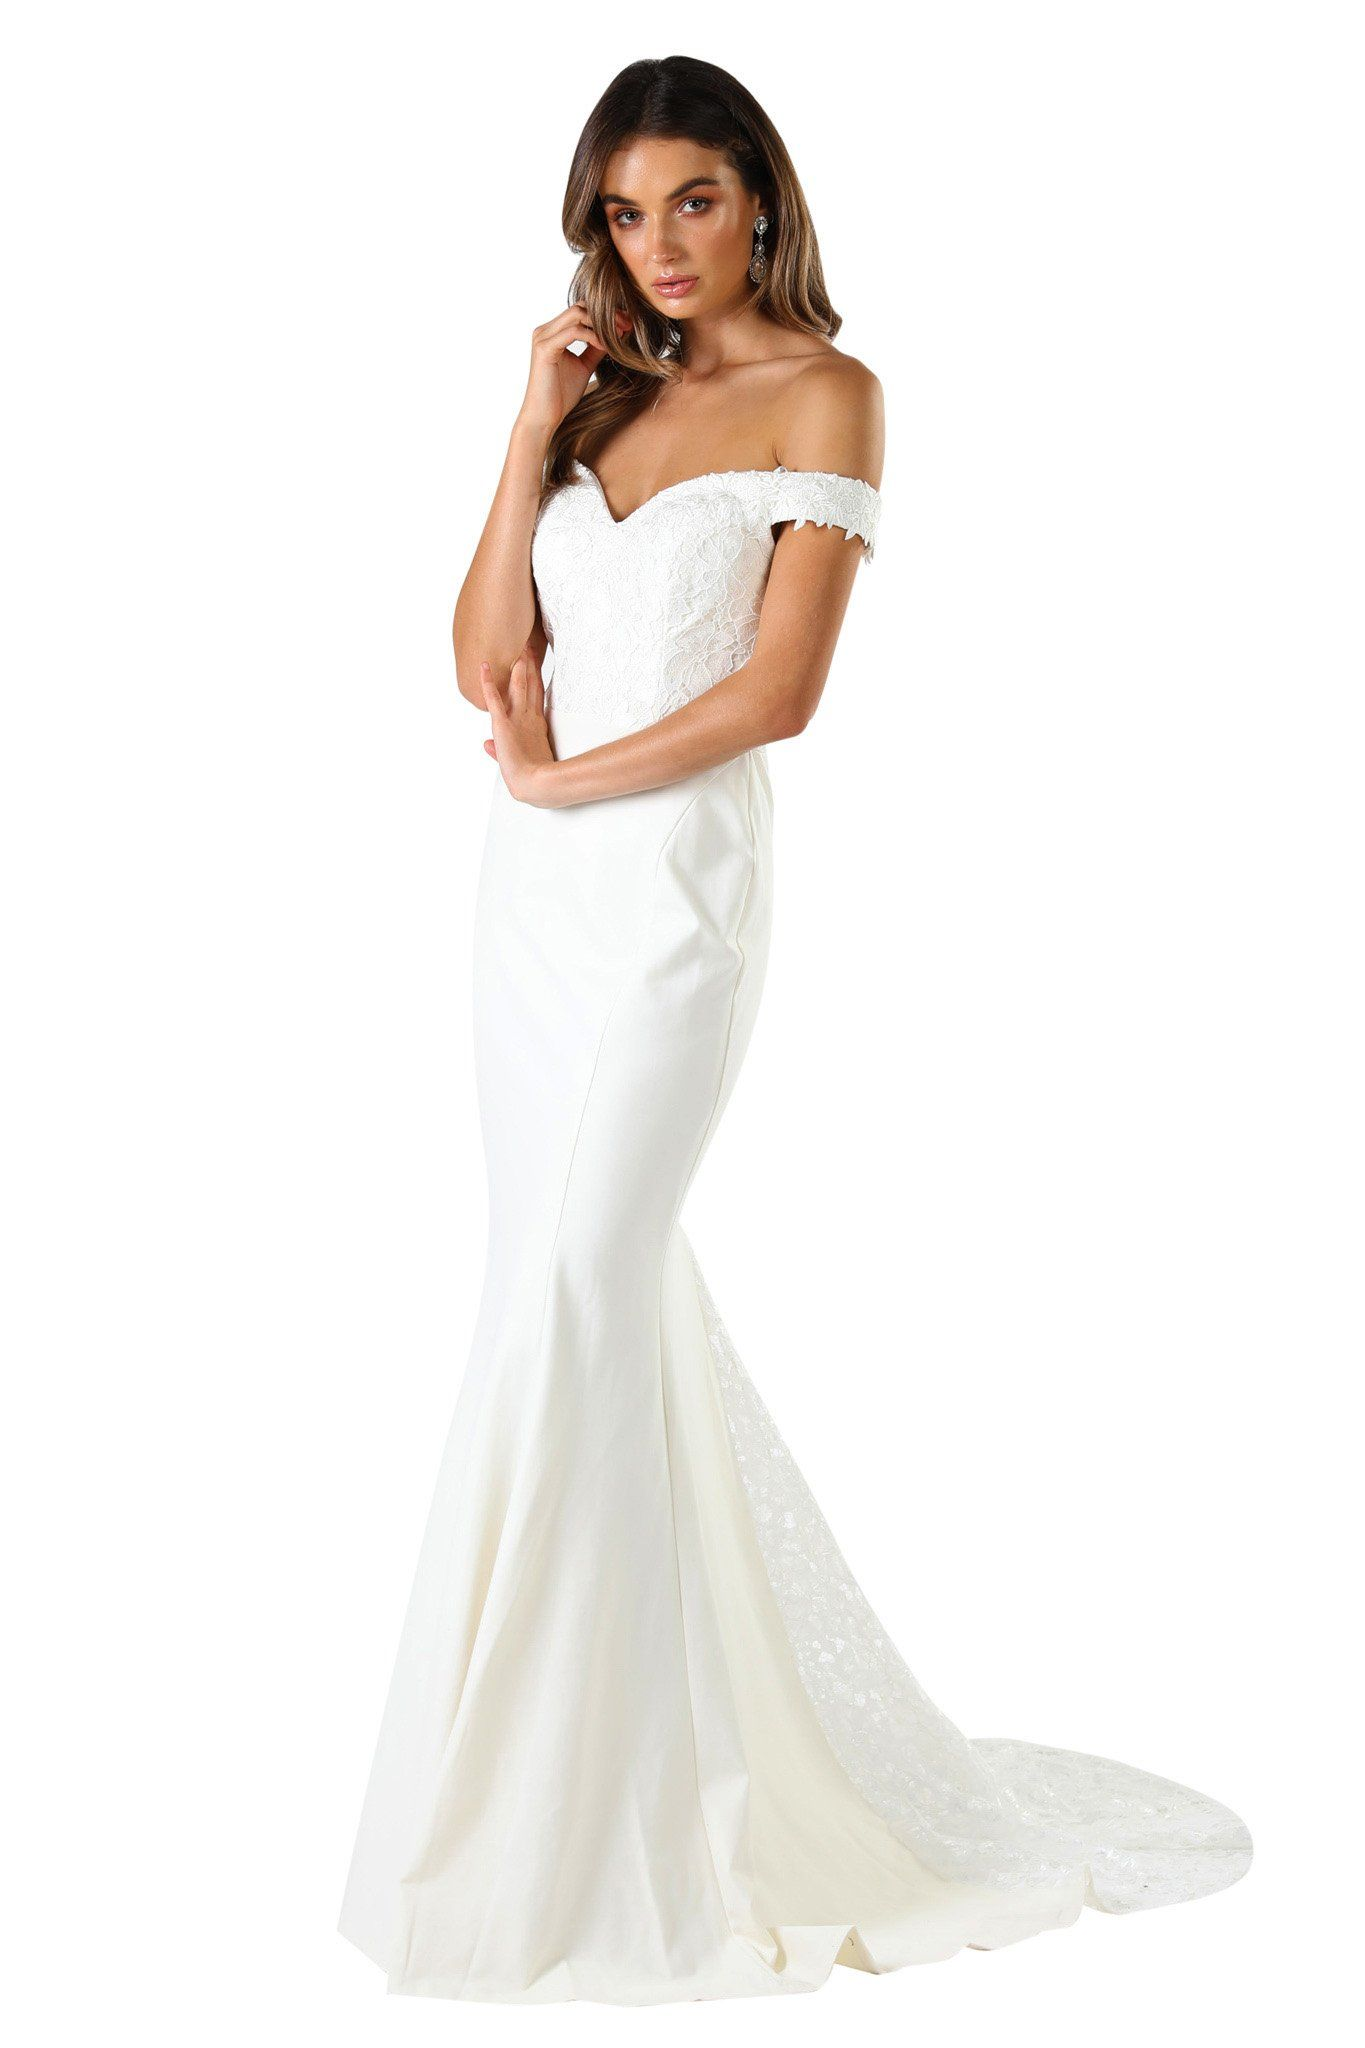 White Floor Length Dress in Open Off The Shoulder Design, Lace Bodice and Lace Godet Train